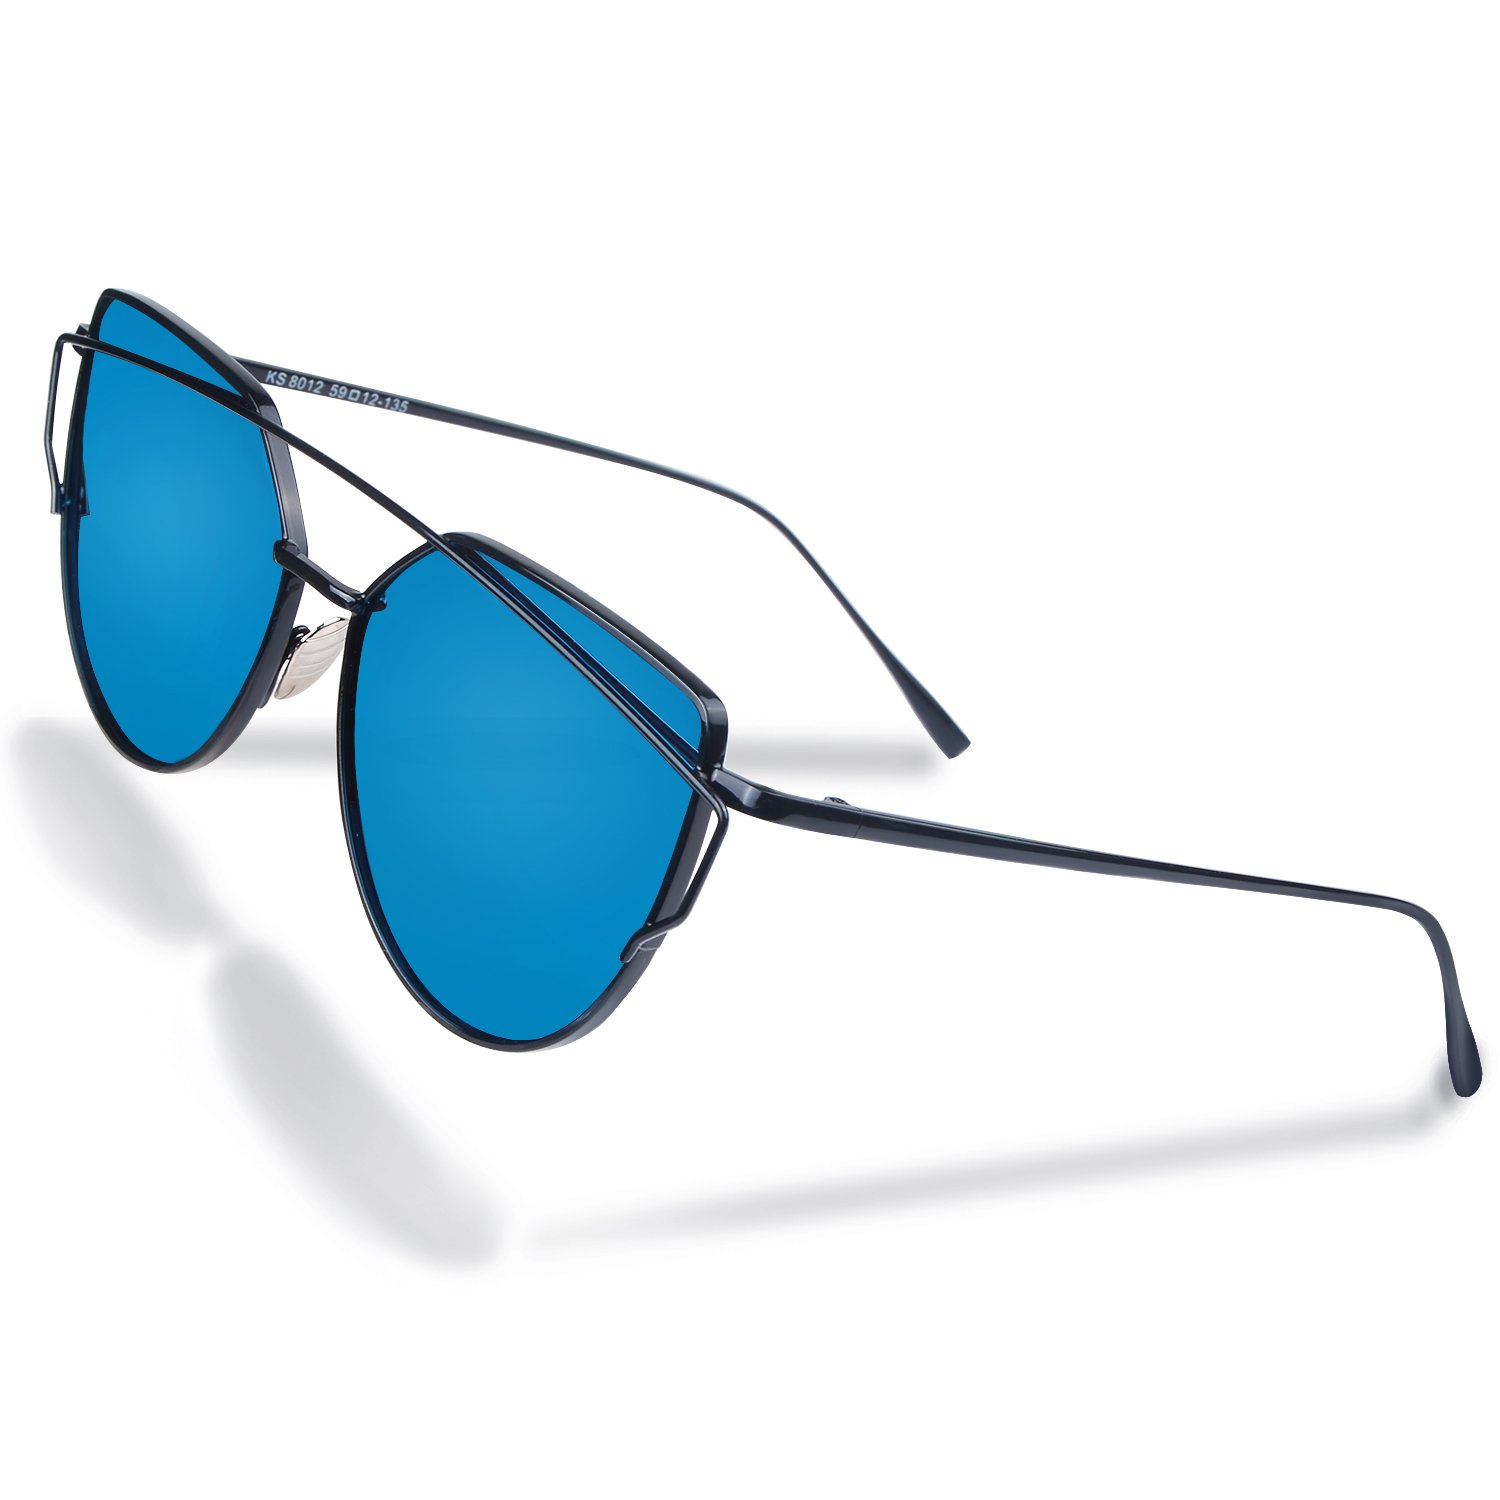 5a77c421f9e Amazon.com  MAOVI Women Sunglasses Cat Eye Mirrored Polarized Glasses  Lenses Fashion Metal Frame Goggles UV400  Clothing